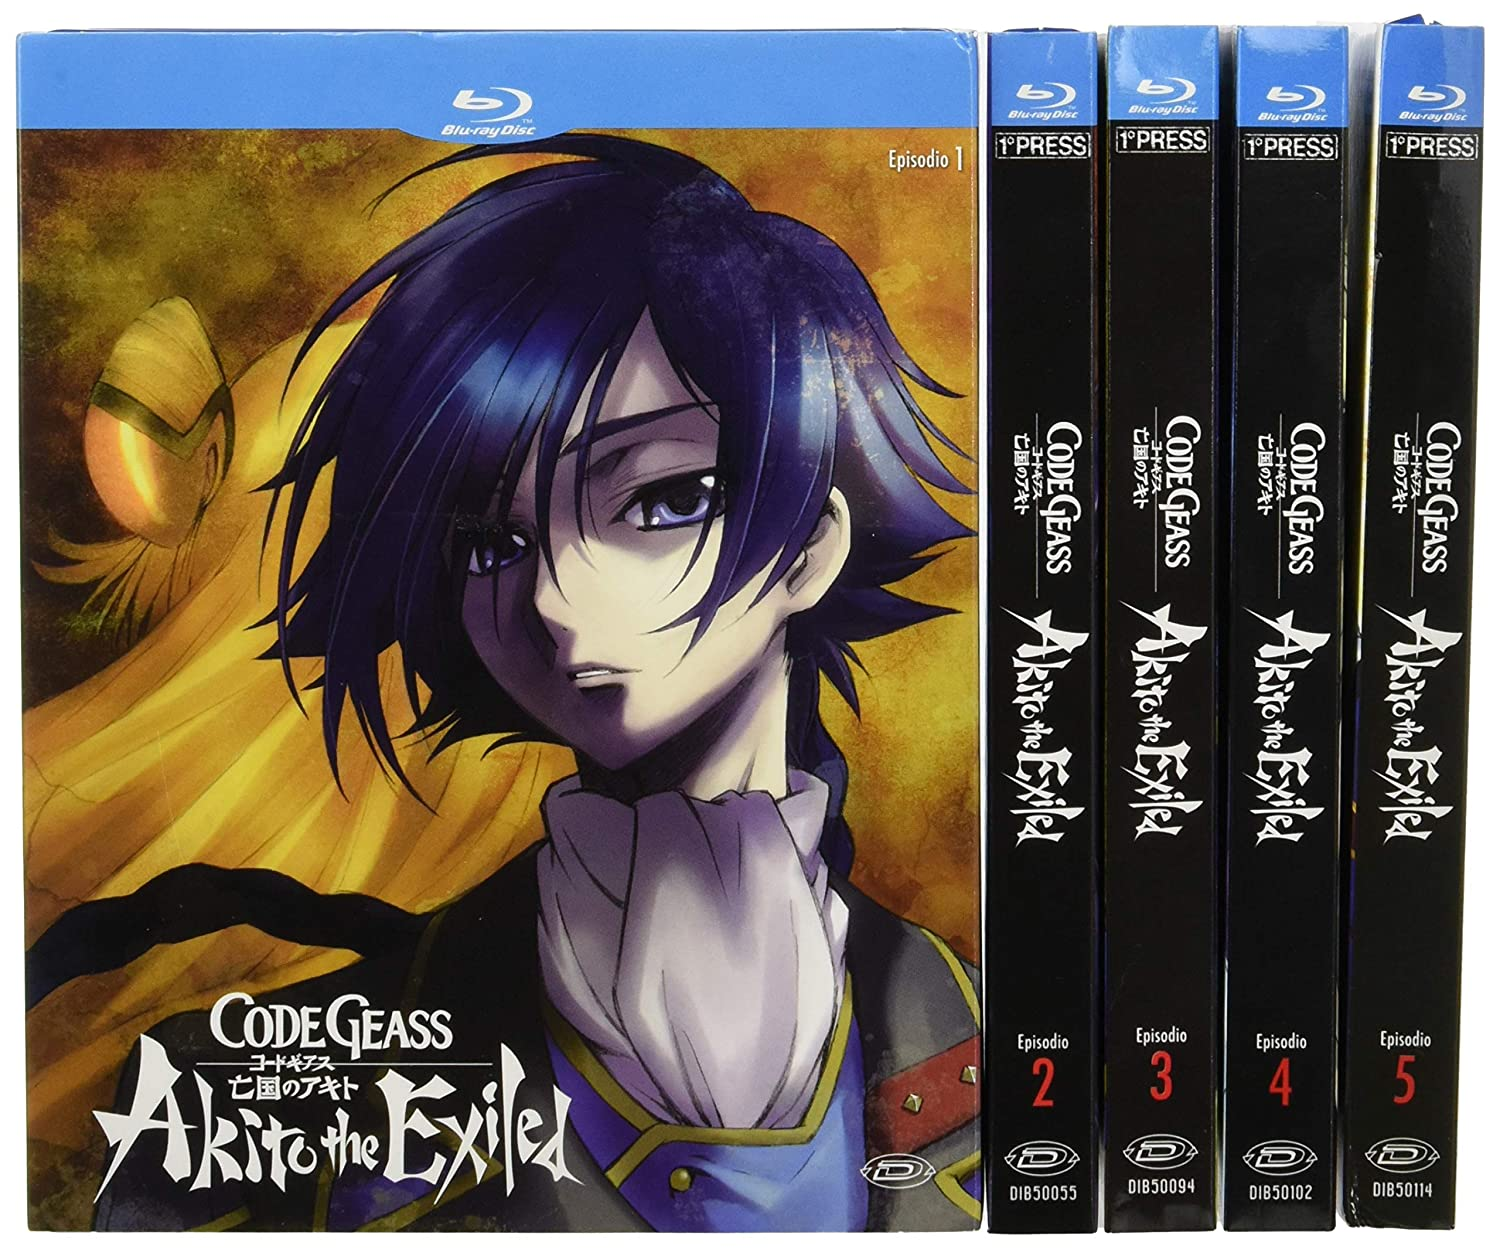 Code-Geass-Akito-The-Exiled-Serie-Completa-5-Blu-Ray